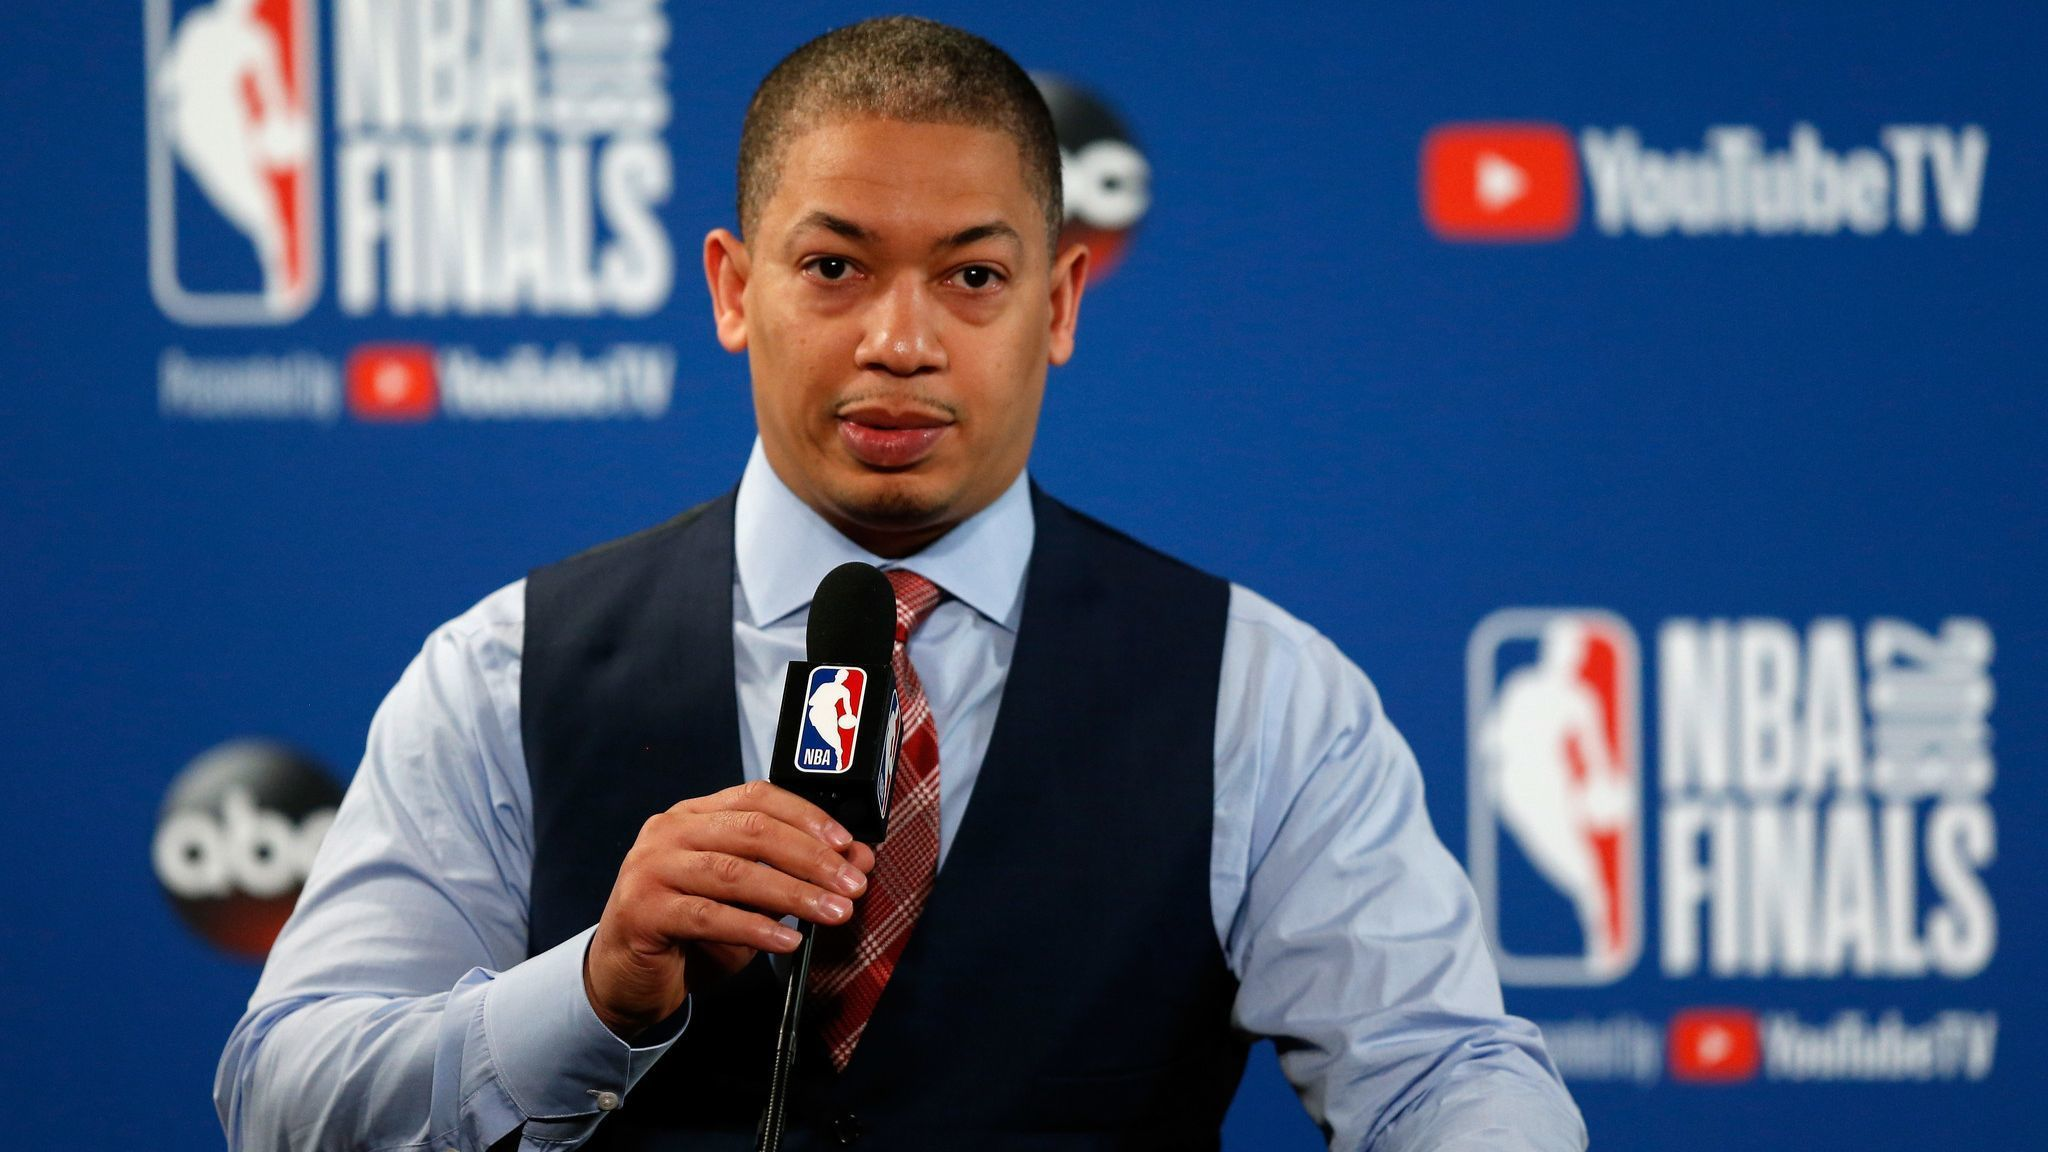 Lakers plan to interview Tyronn Lue, Monty Williams and Juwan Howard this week